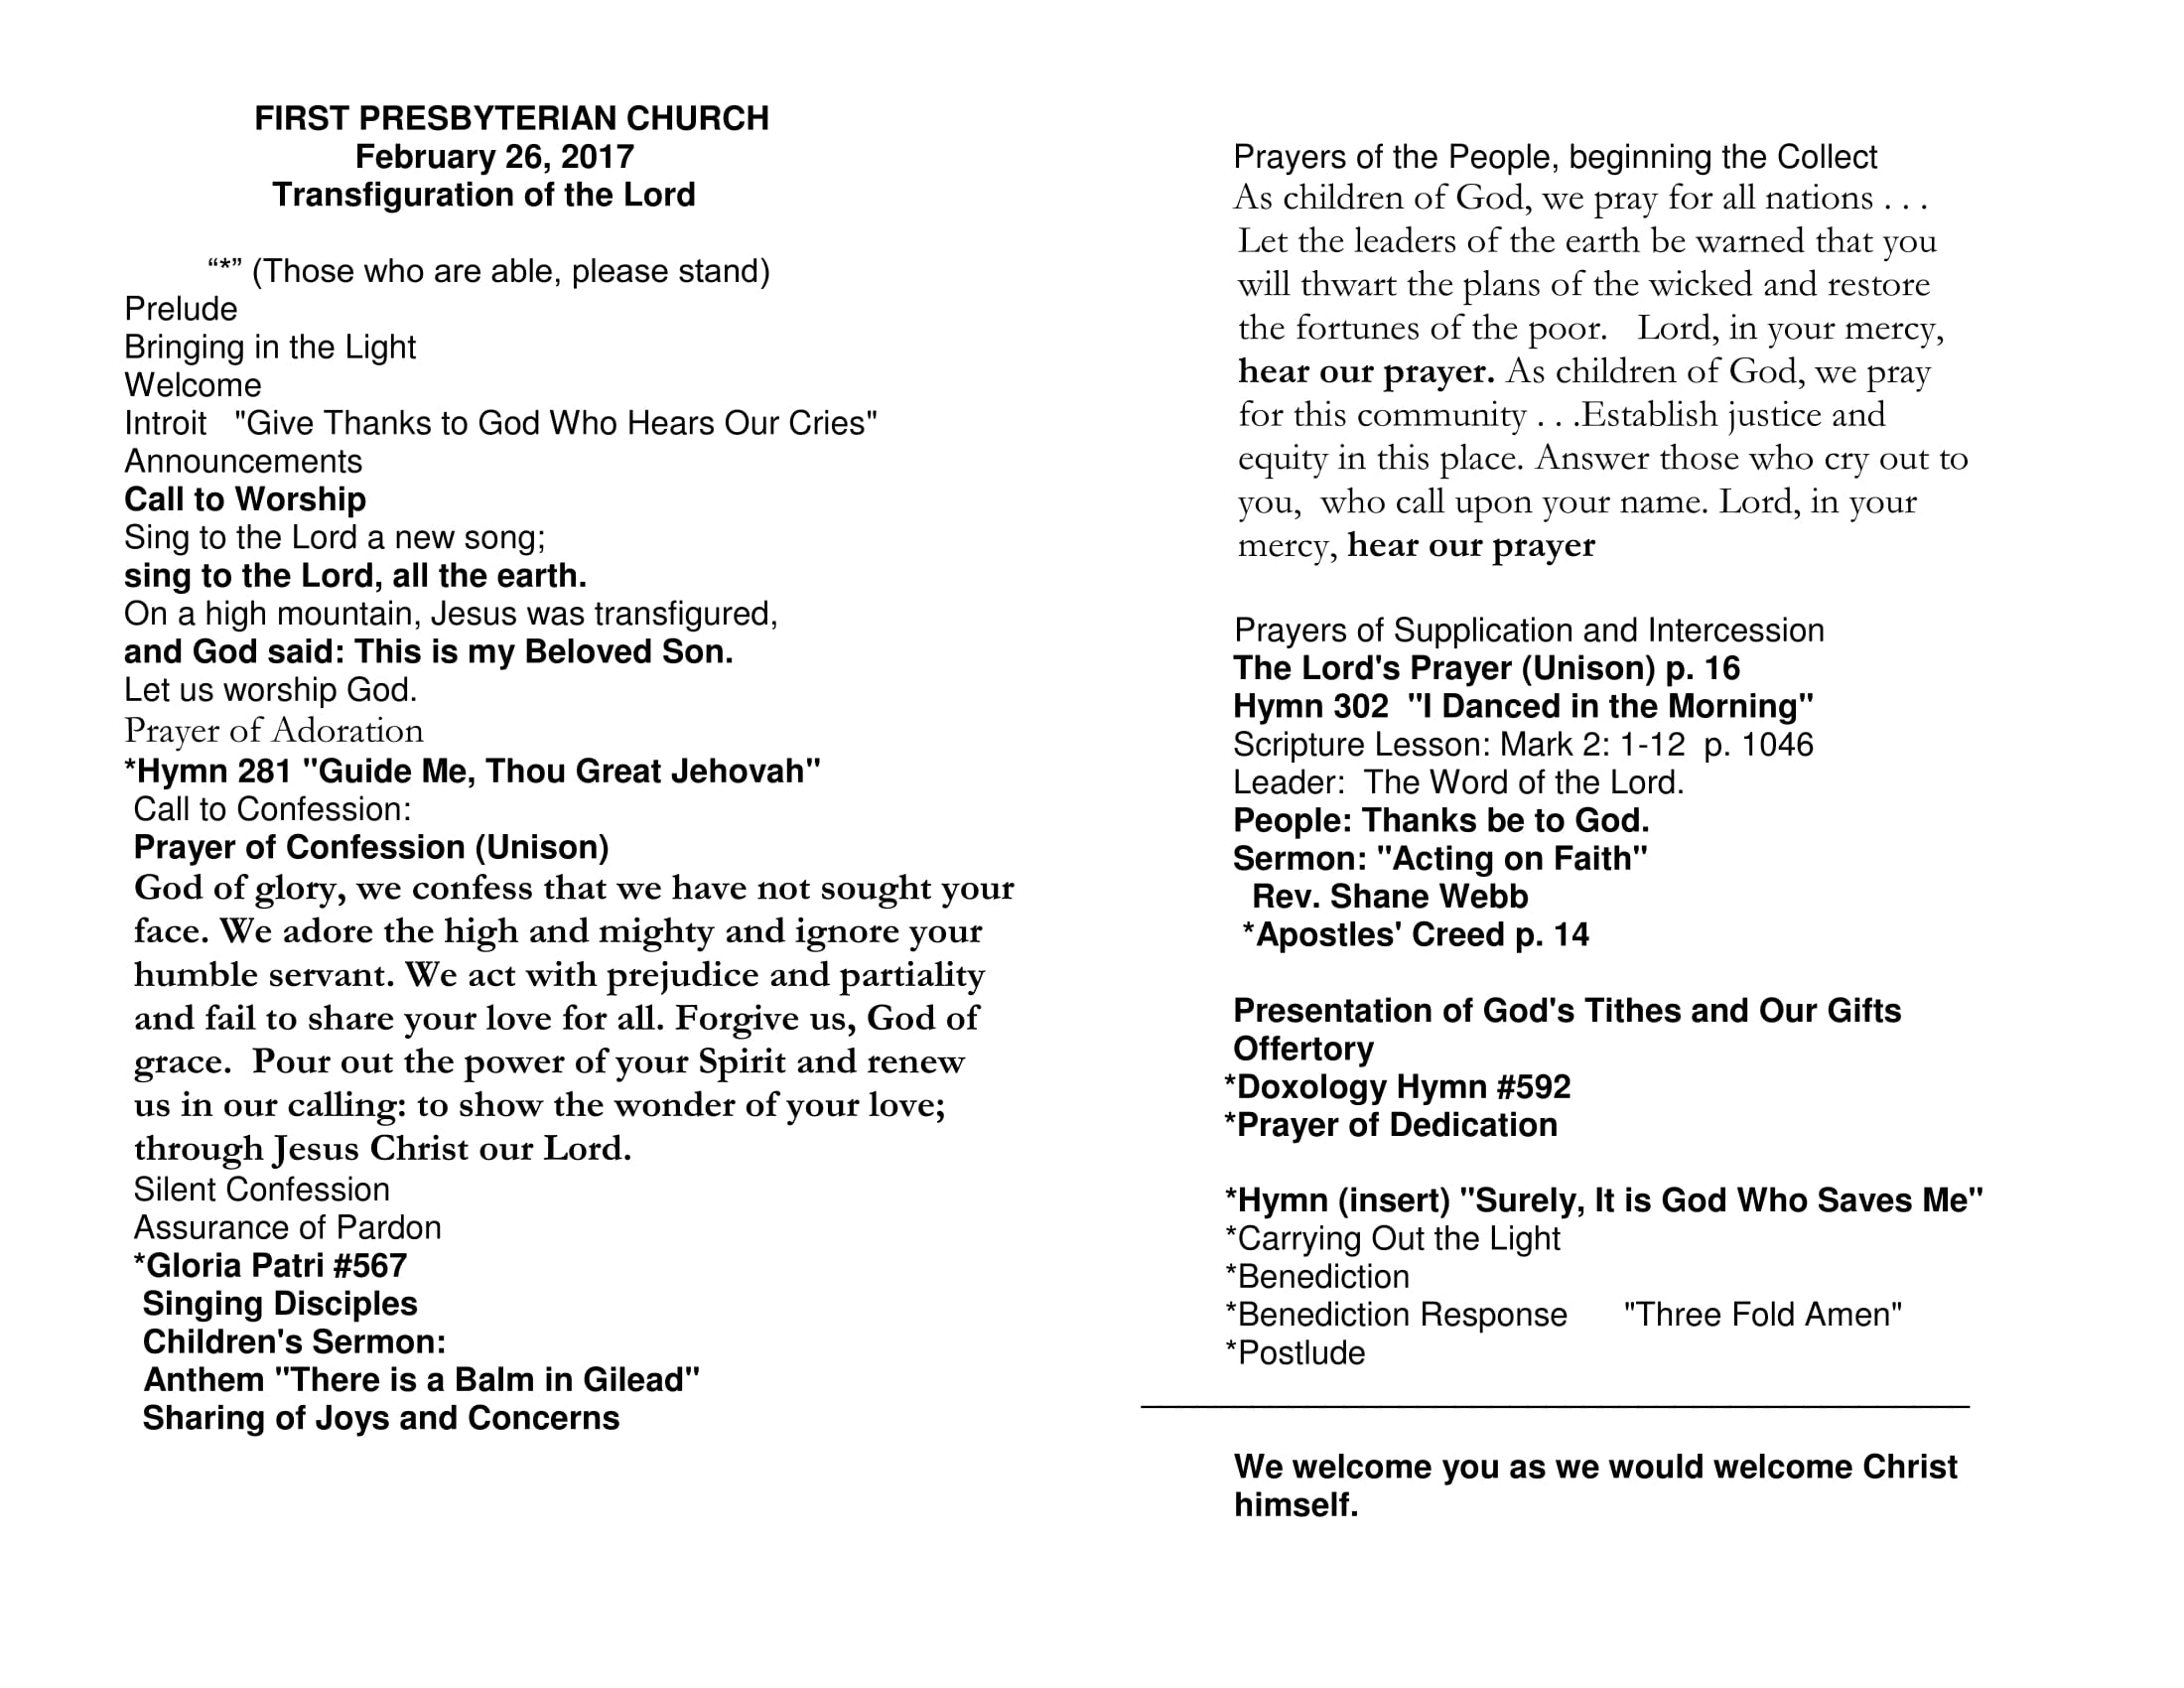 worship service program 2 26 17 first presbyterian church mt